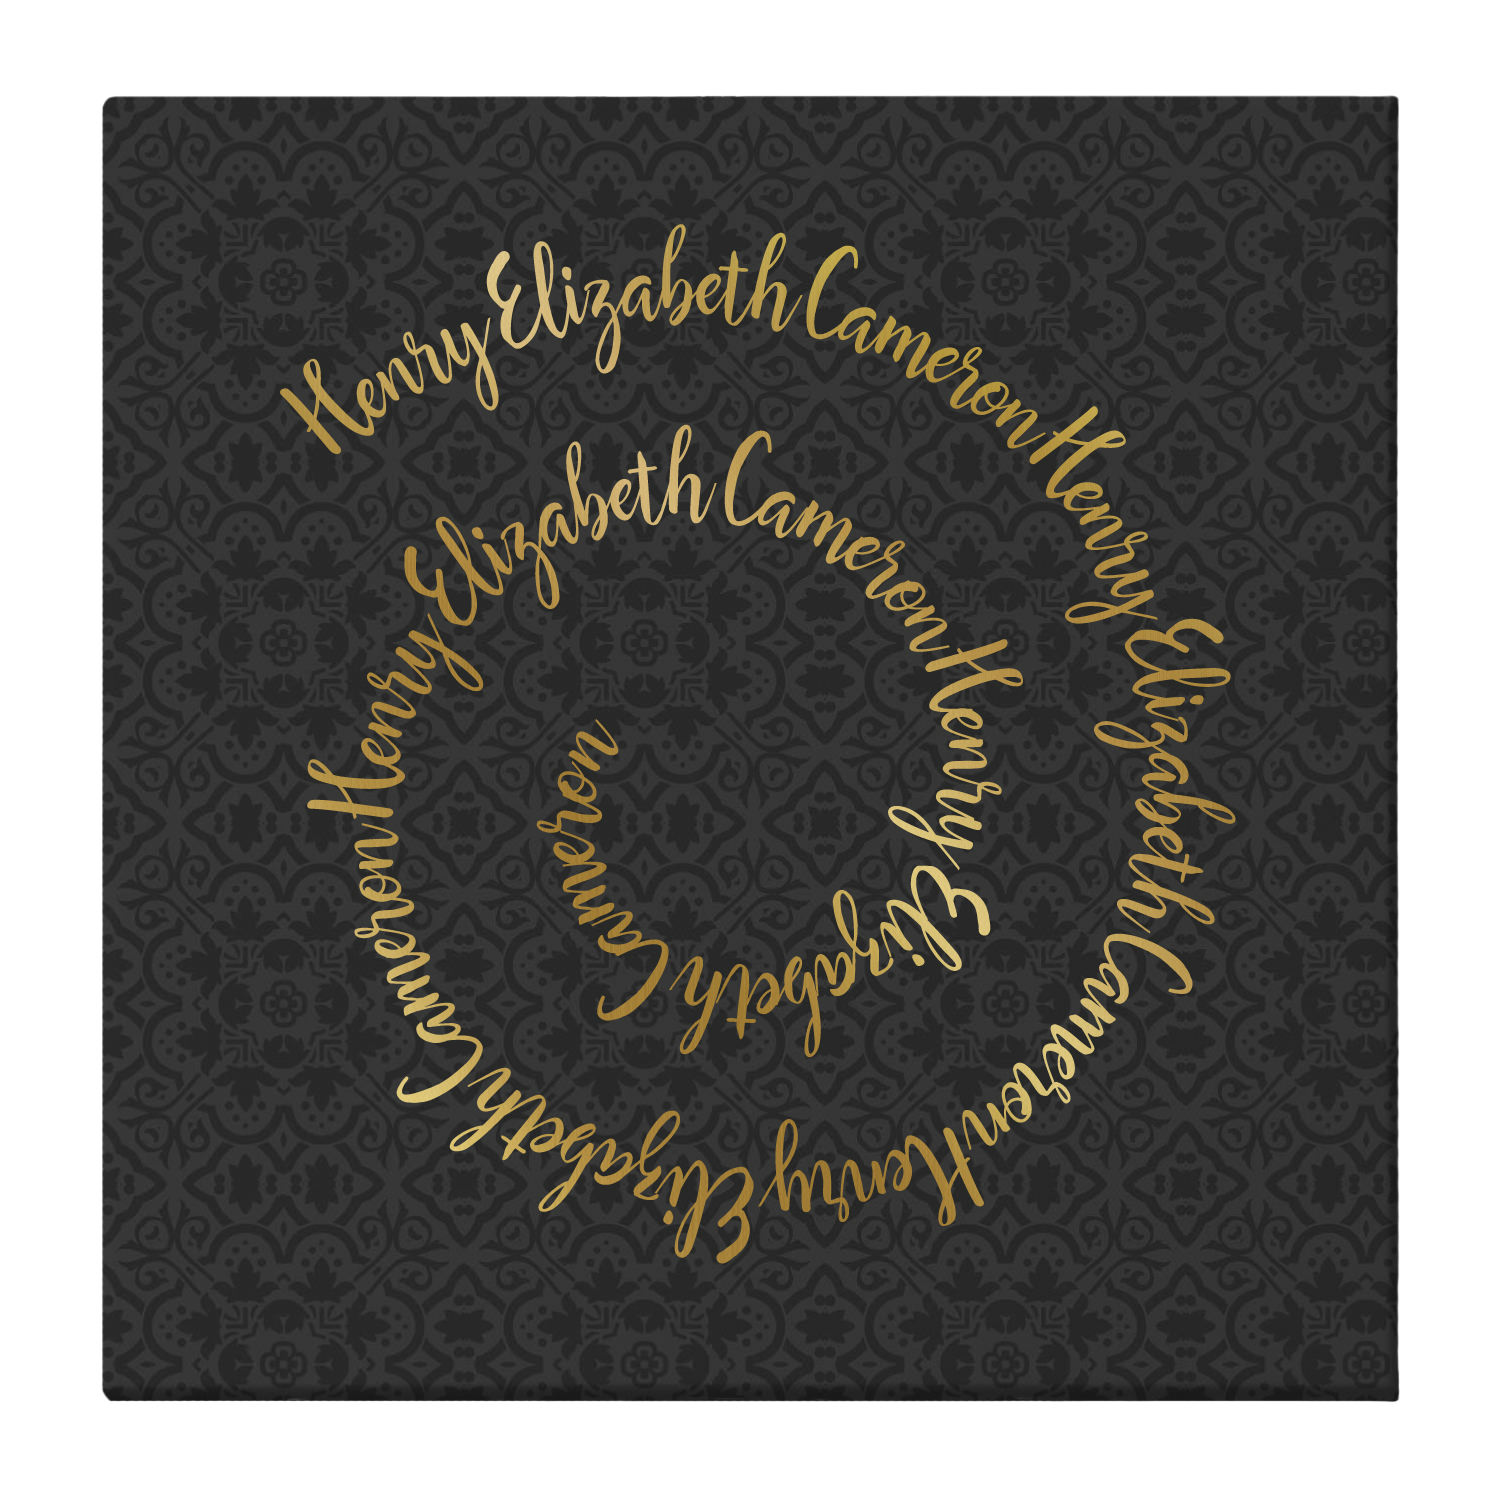 Personalized Circle of Love Canvas - Gold -Available in Gold or Teal and 2 Sizes